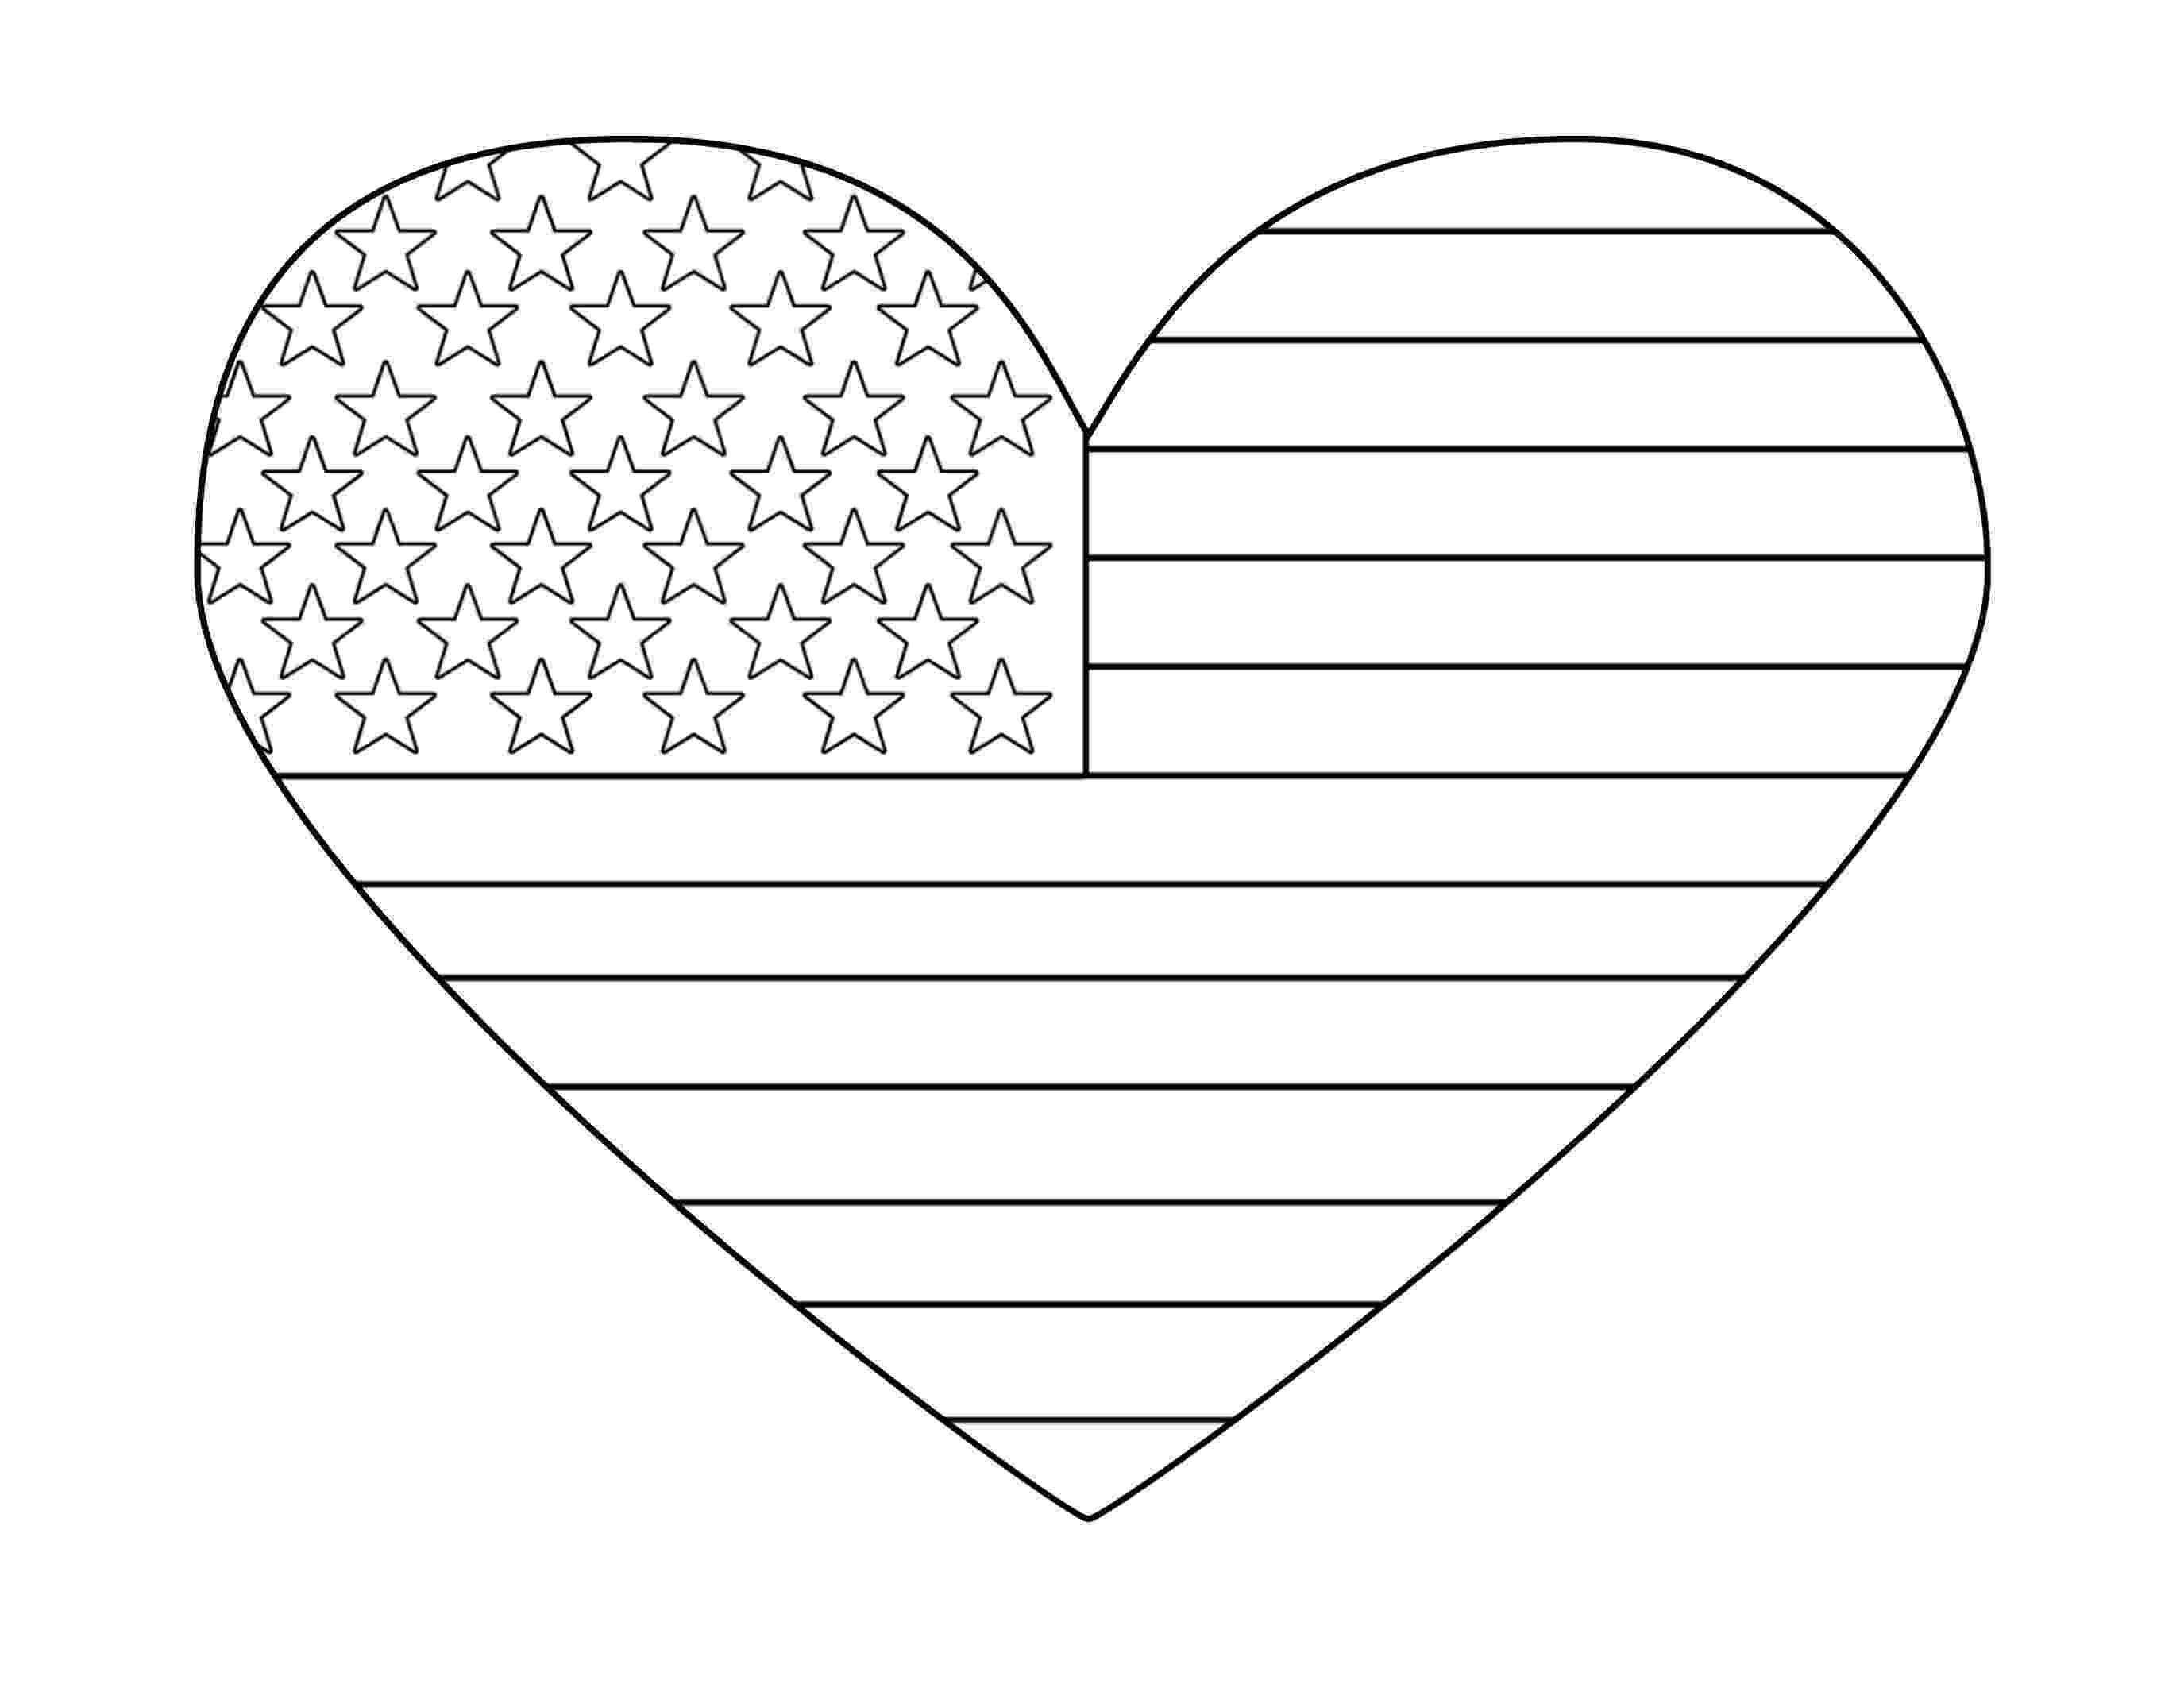 heart coloring page free printable heart coloring pages for kids page coloring heart 1 1